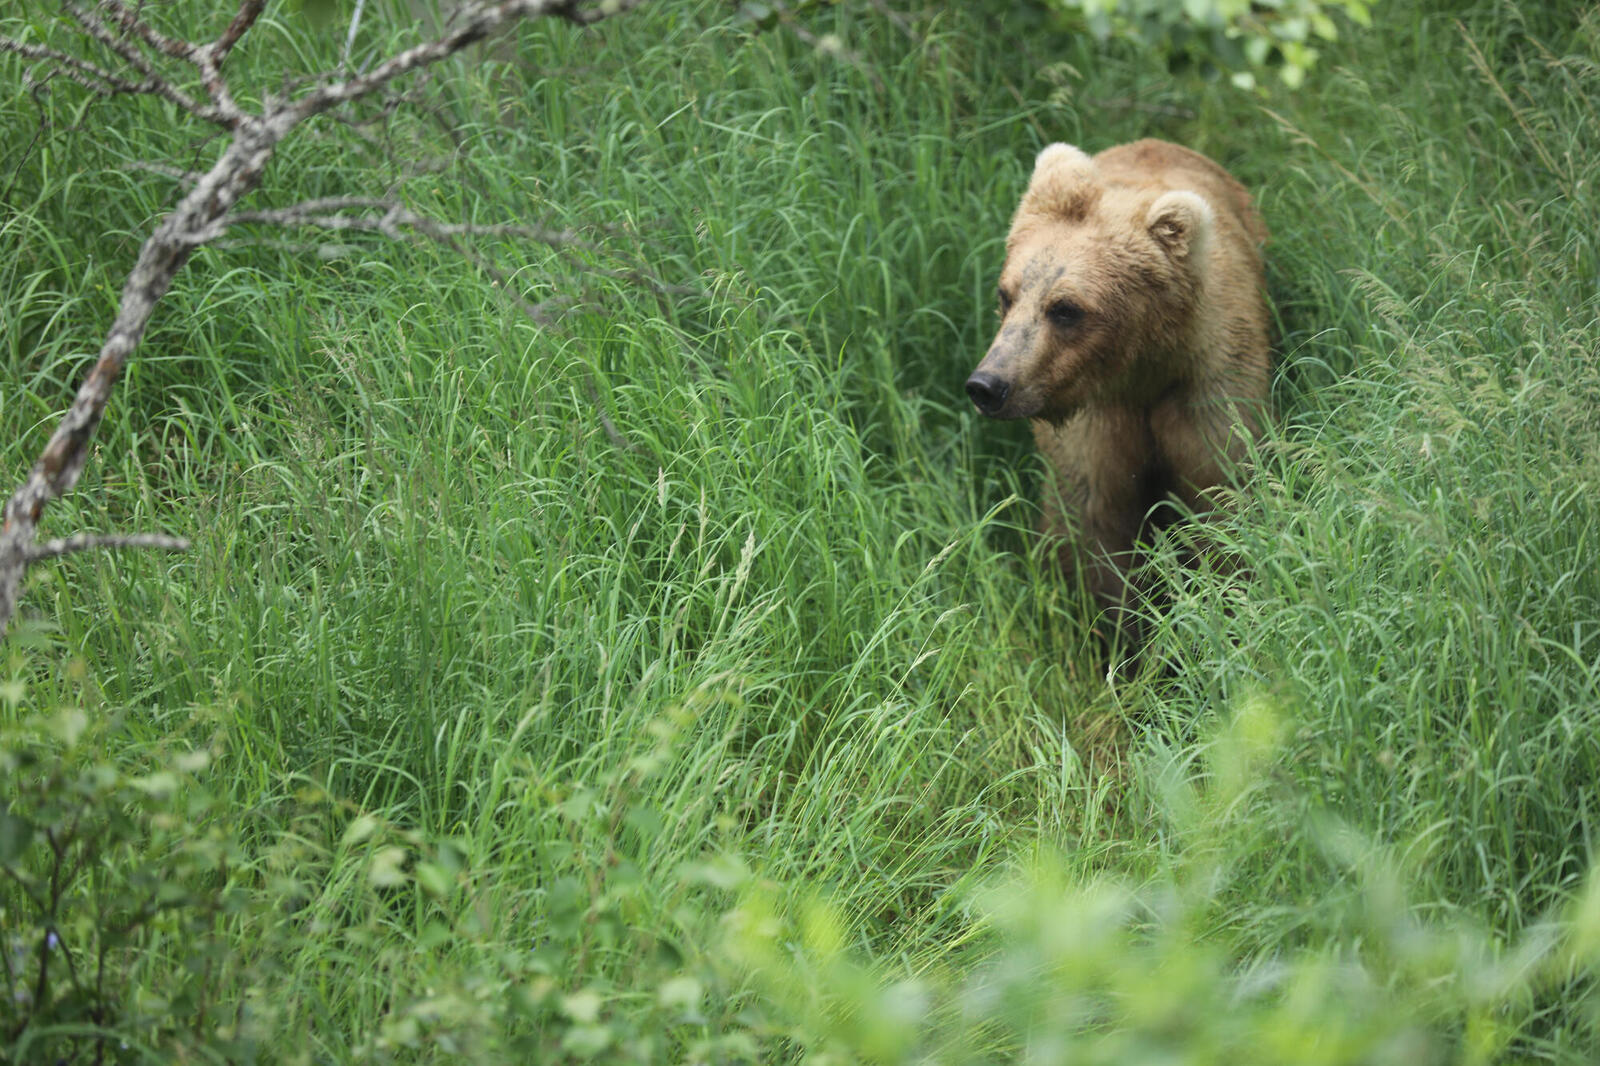 Grizzly bear in high grass